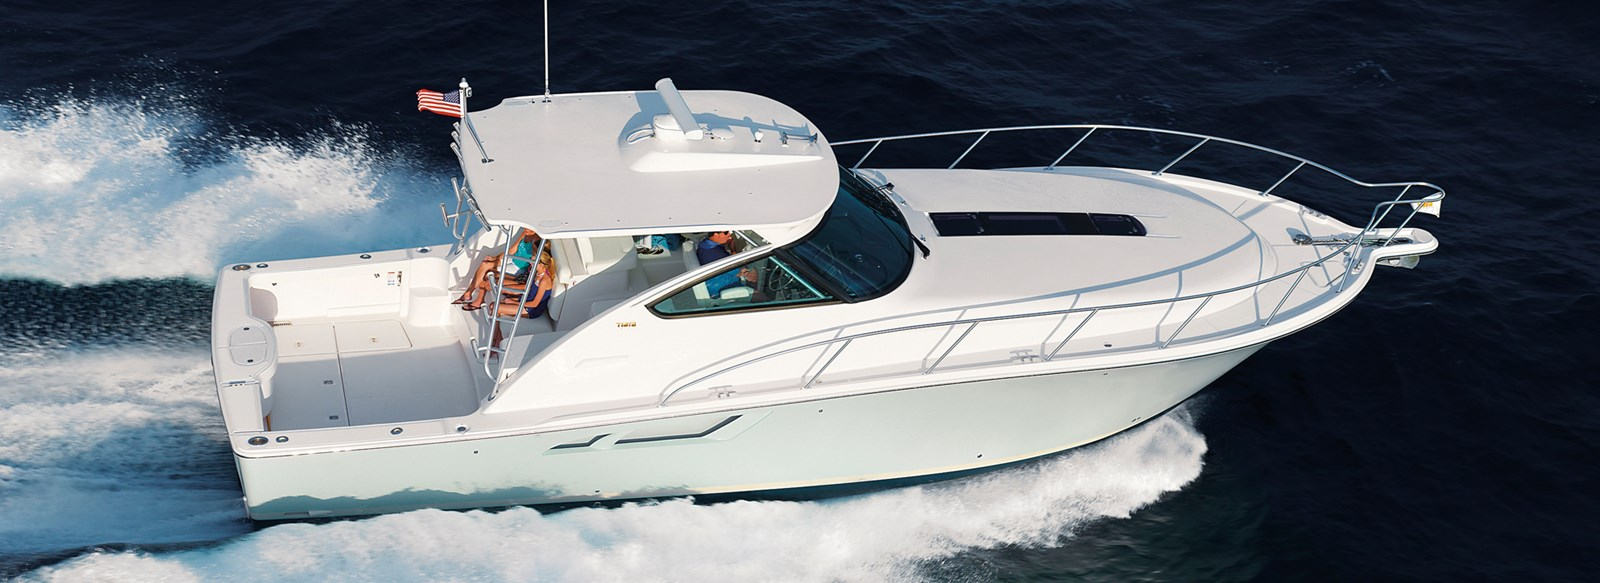 New Tiara 4300 Open Yachts For Sale